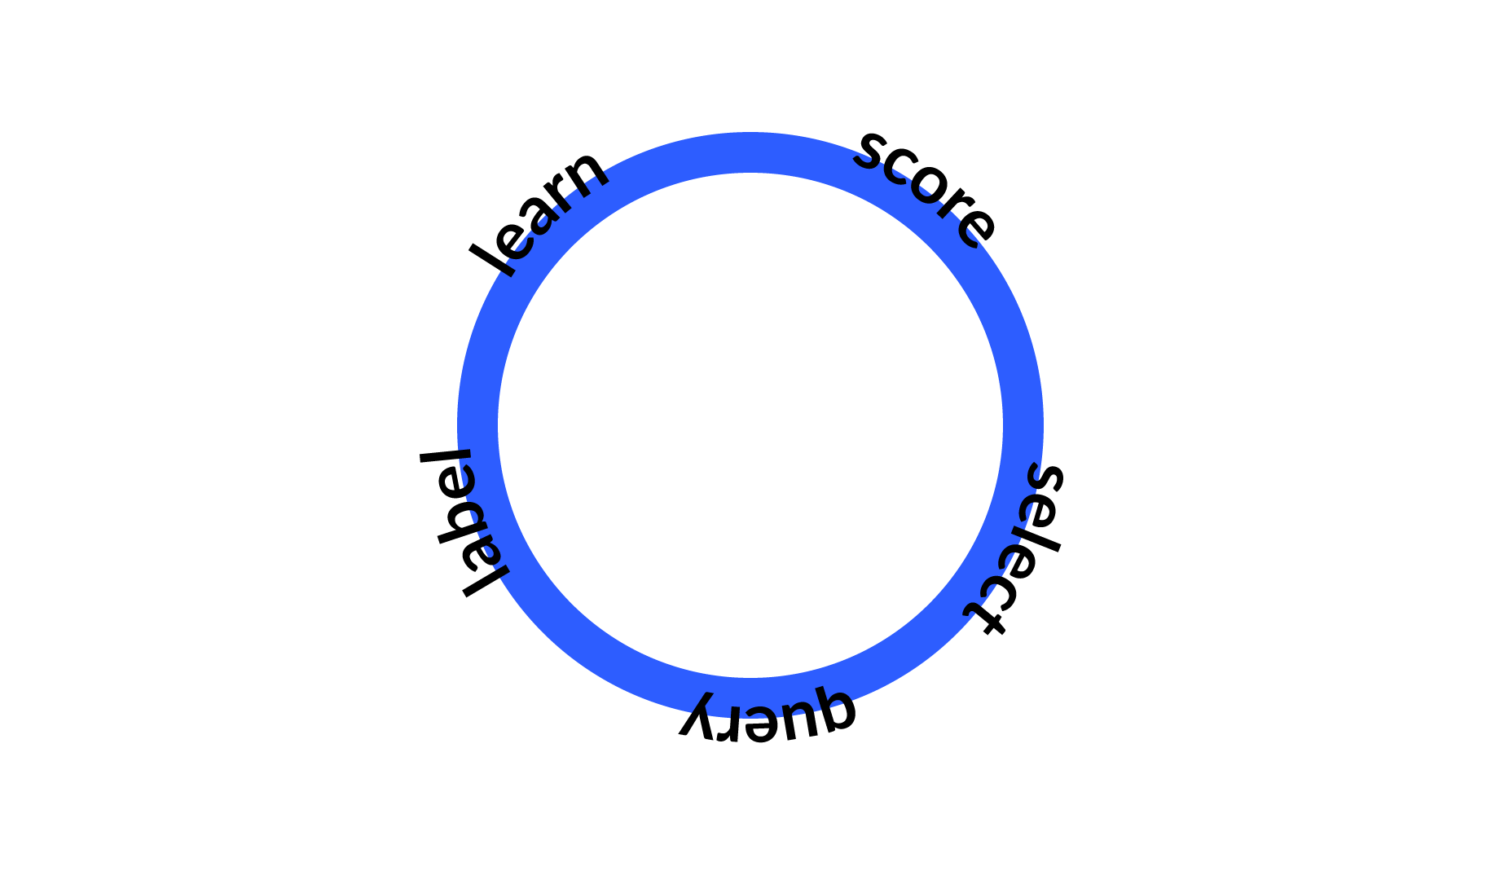 an active learning circle